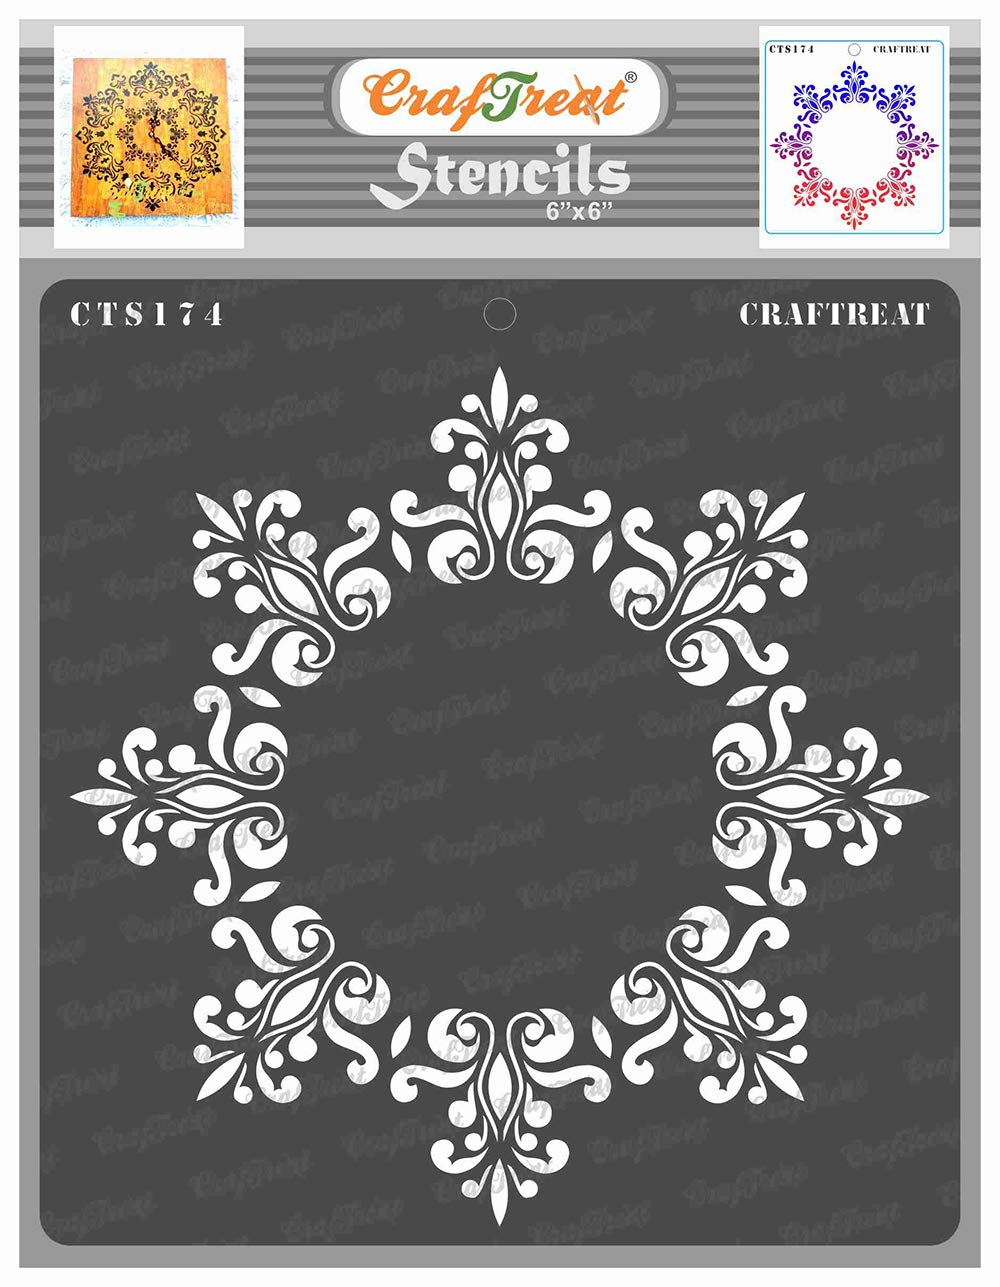 CrafTreat DoilyMandala Stencils for Painting on Wood, Canvas, Paper, Fabric, Floor, Wall and Tile - Octagon Doily - 6x6 Inches - Reusable DIY Art and Craft Stencils - Octagon Stencil